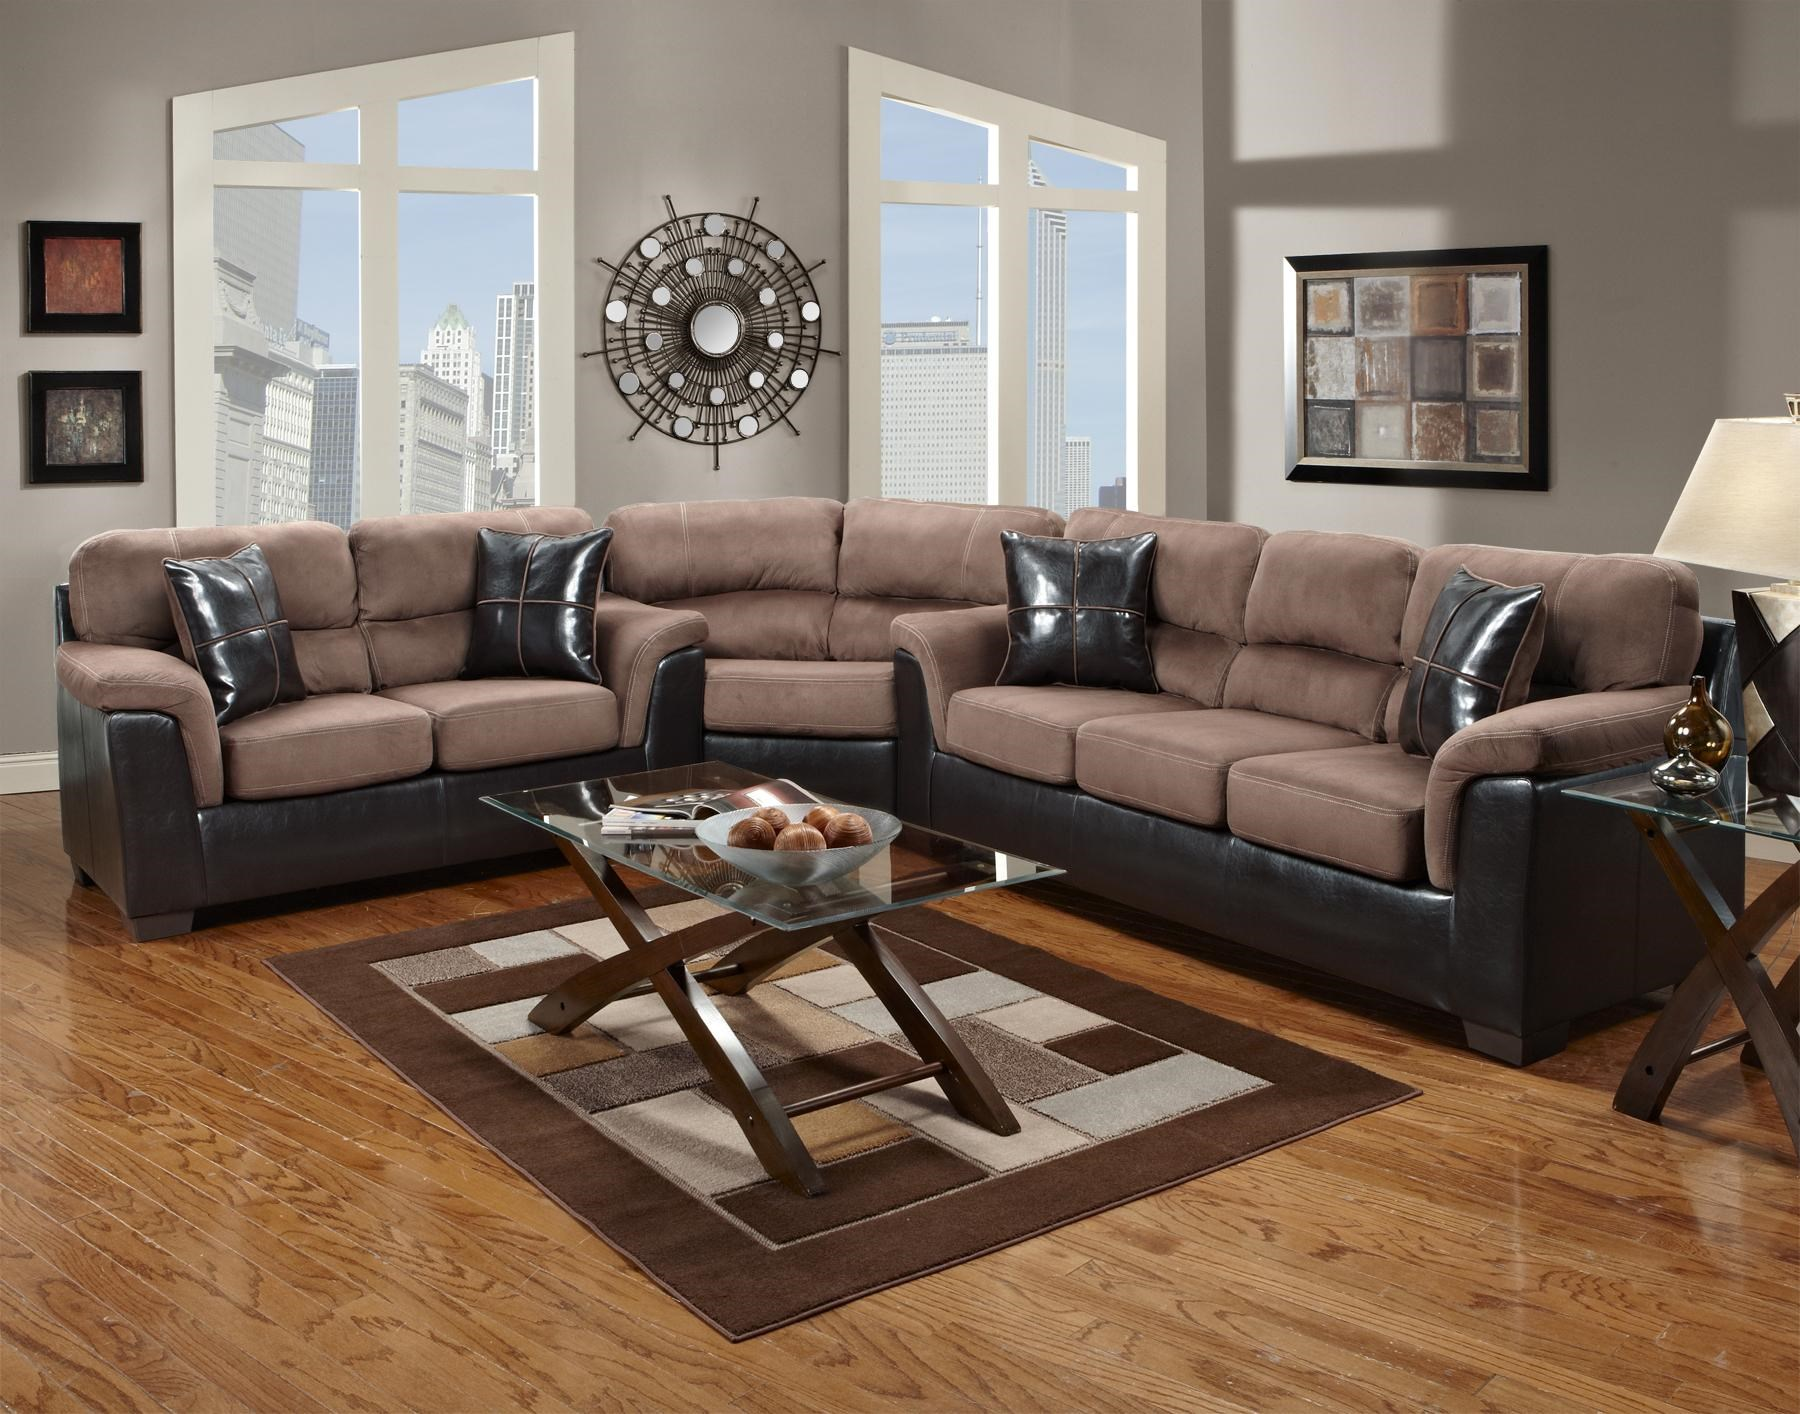 Fabric Faux Leather Sectional with Wedge 6200 by